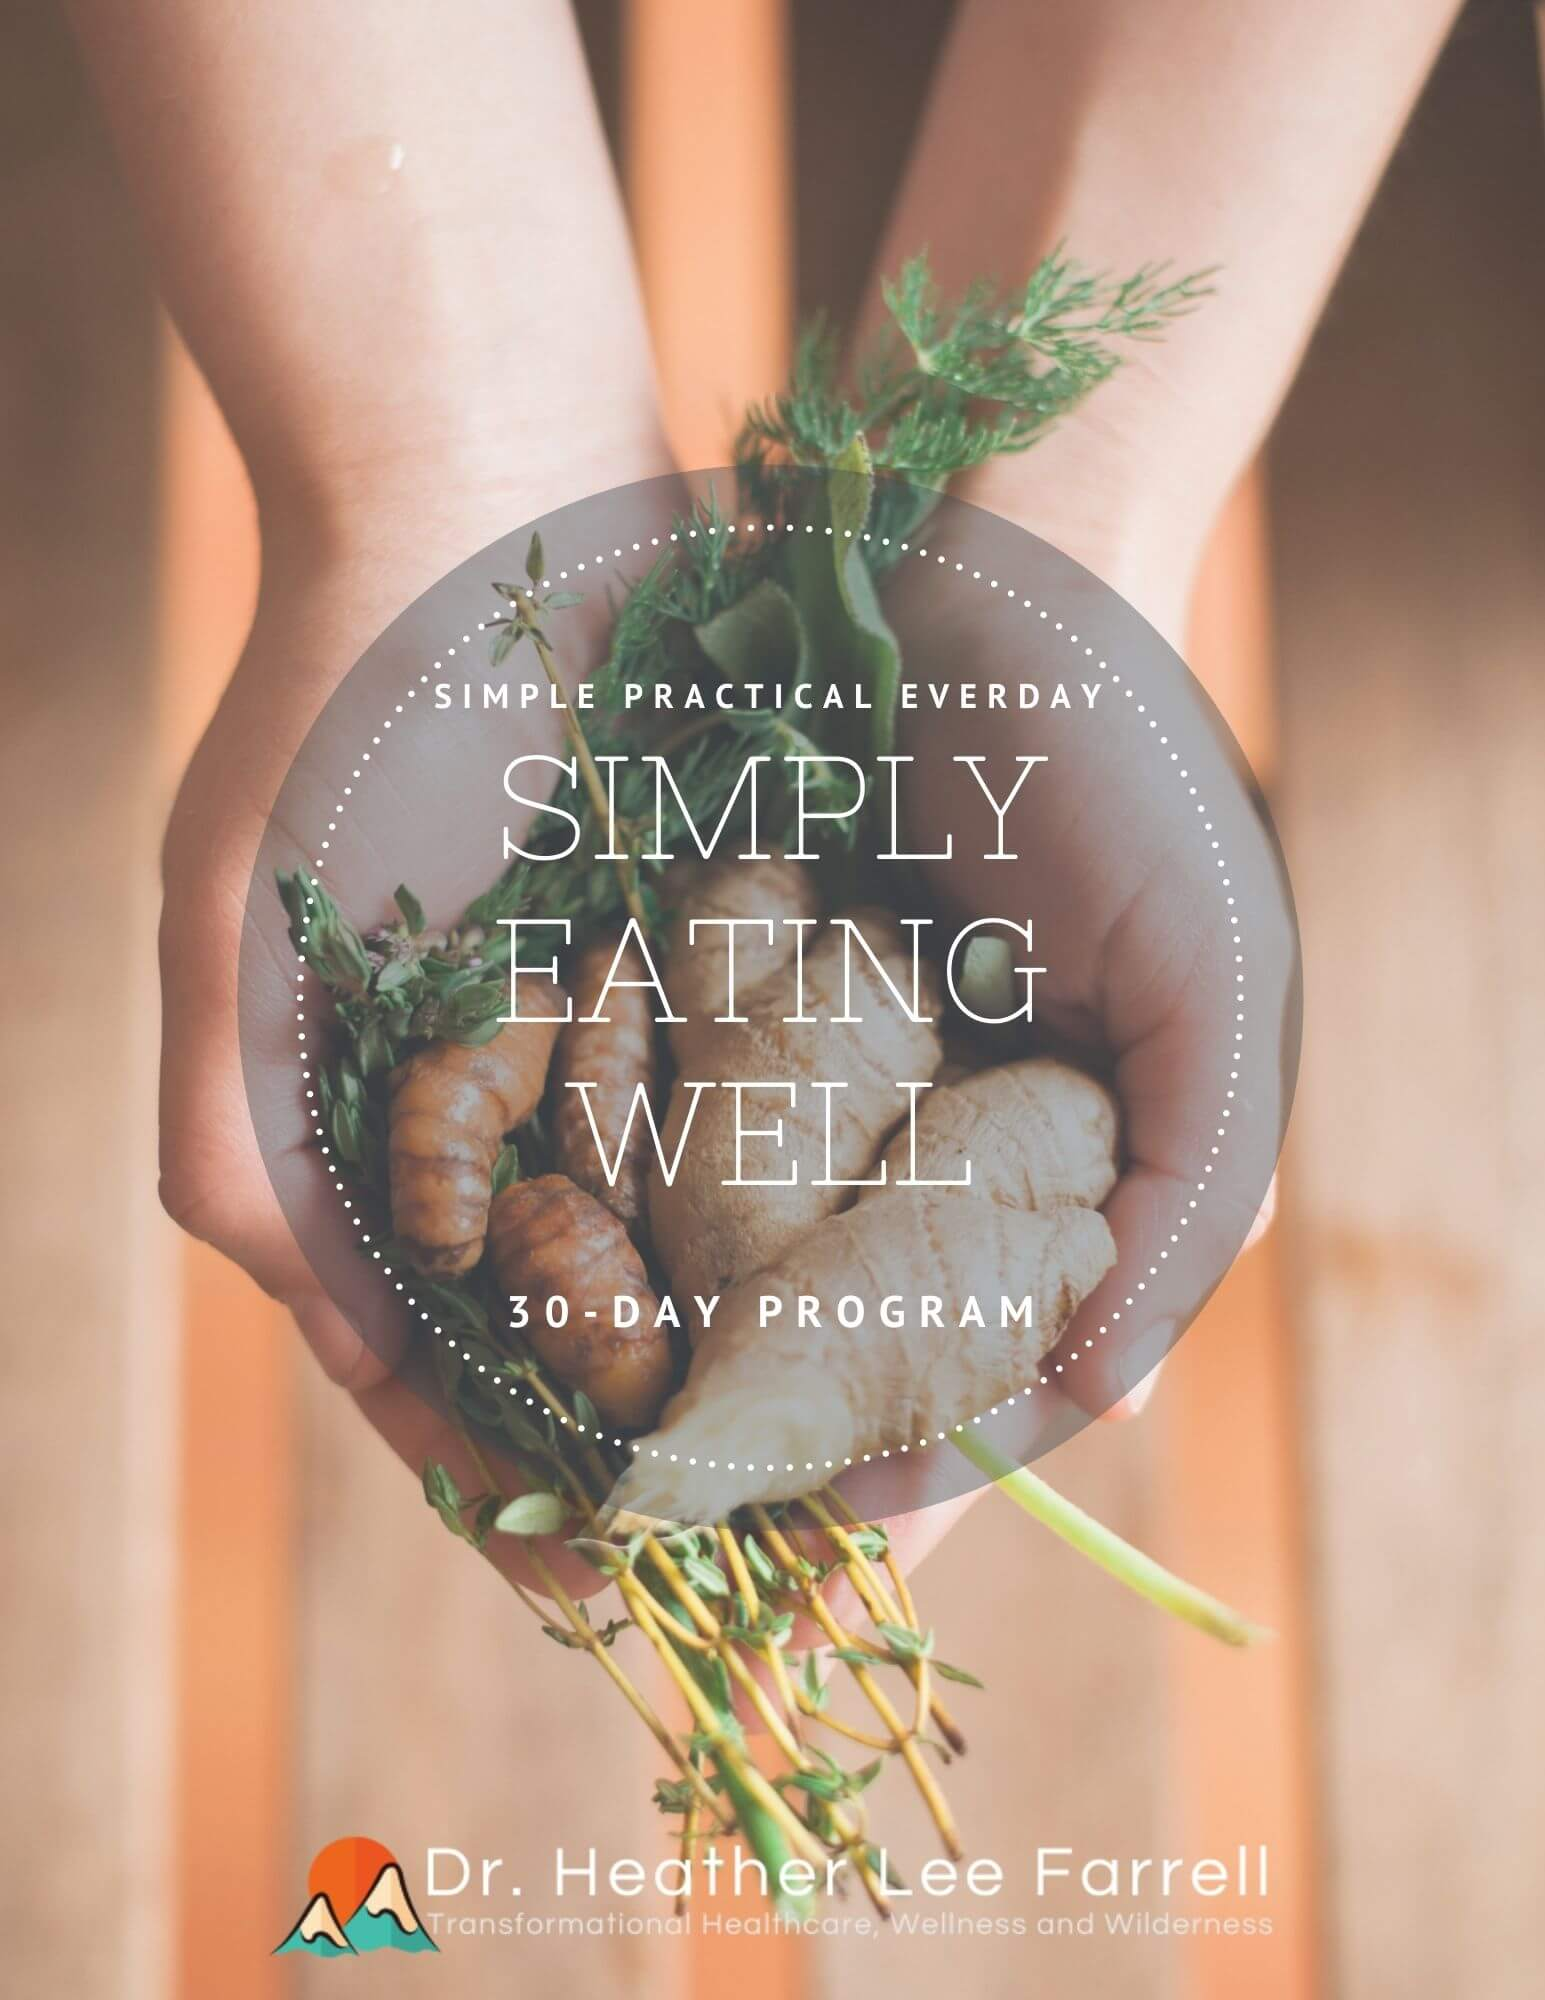 Simply eating well with hands holding vegetables